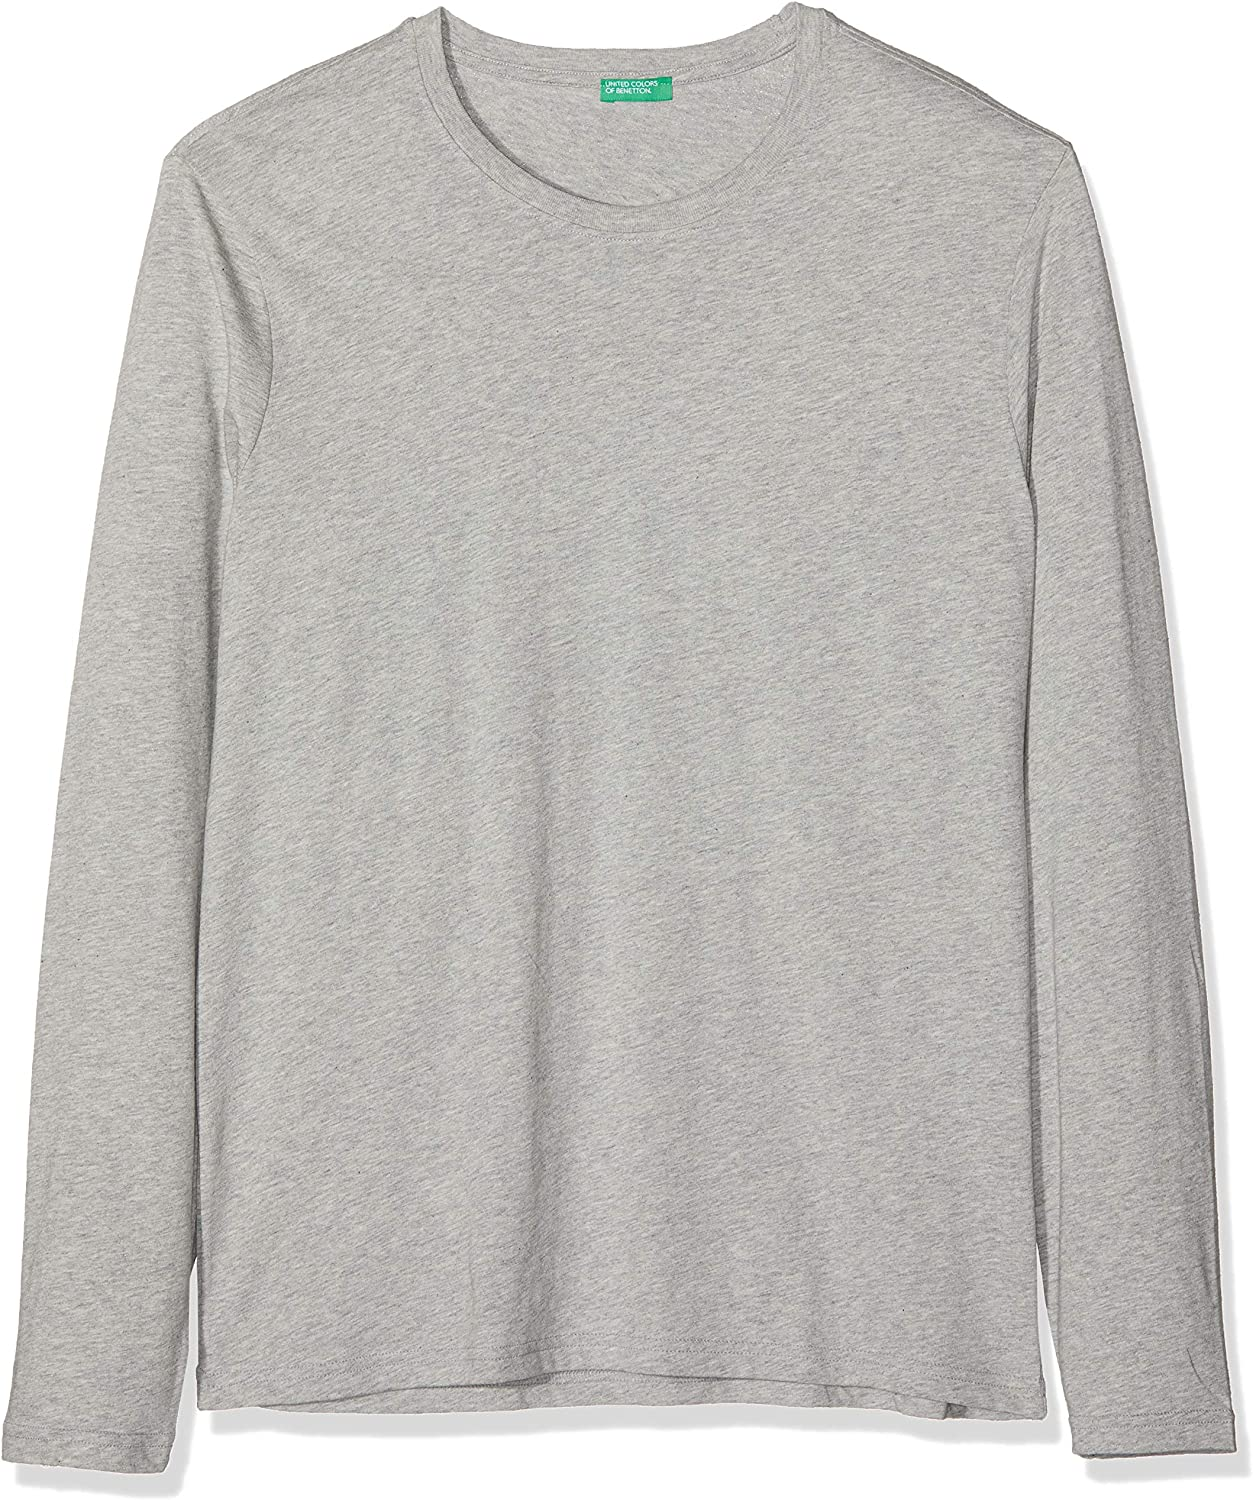 United Colors of Benetton Mens Long Sleeve Top